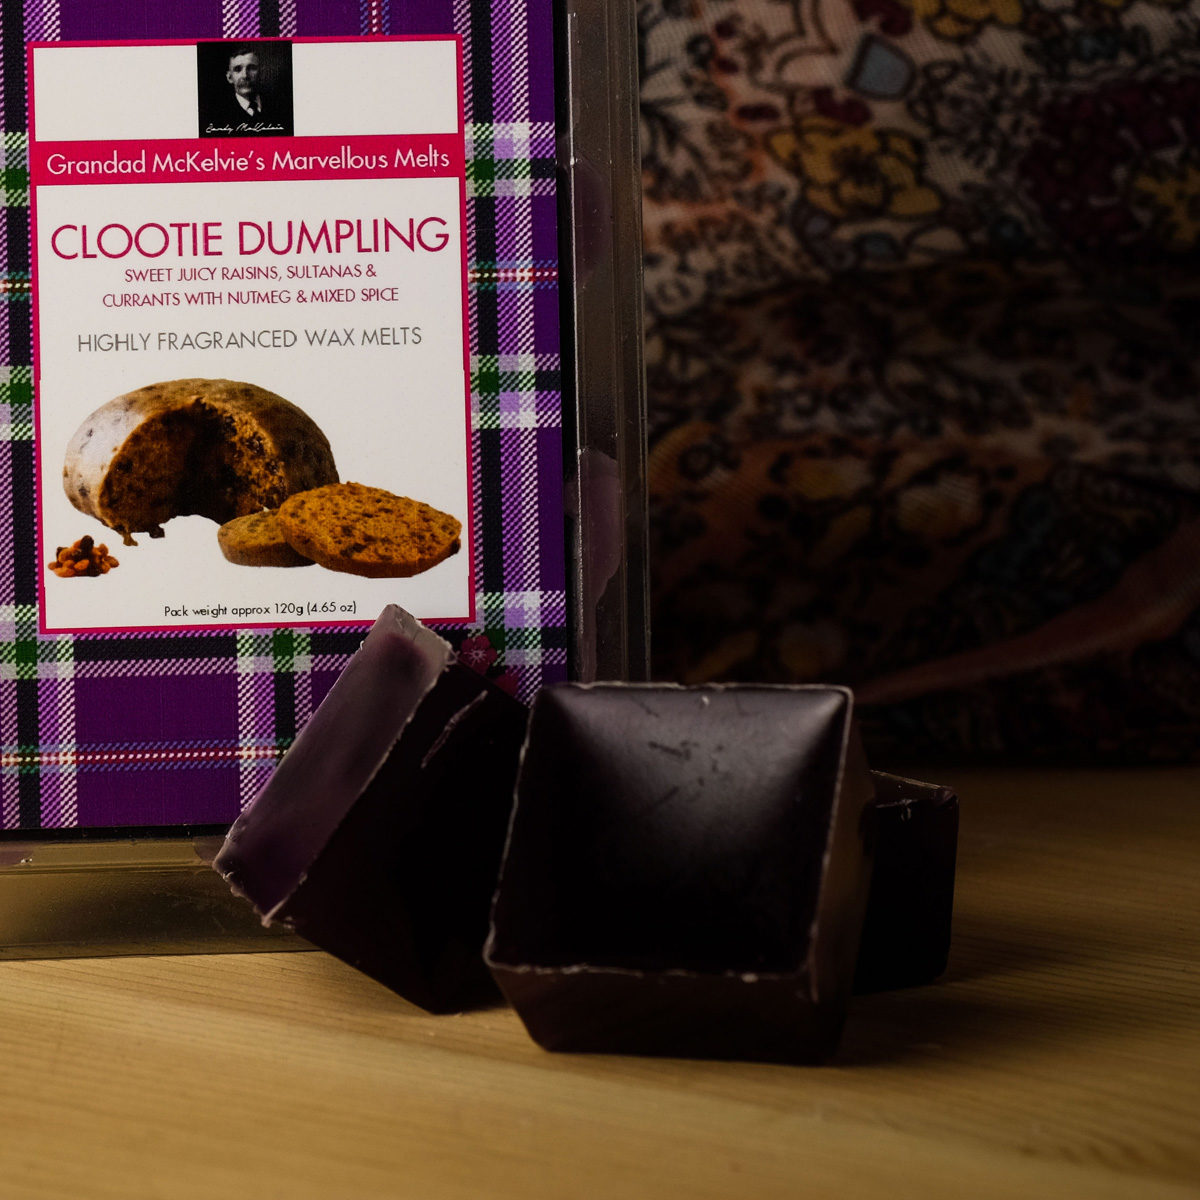 Clootie Dumpling Wax Melts